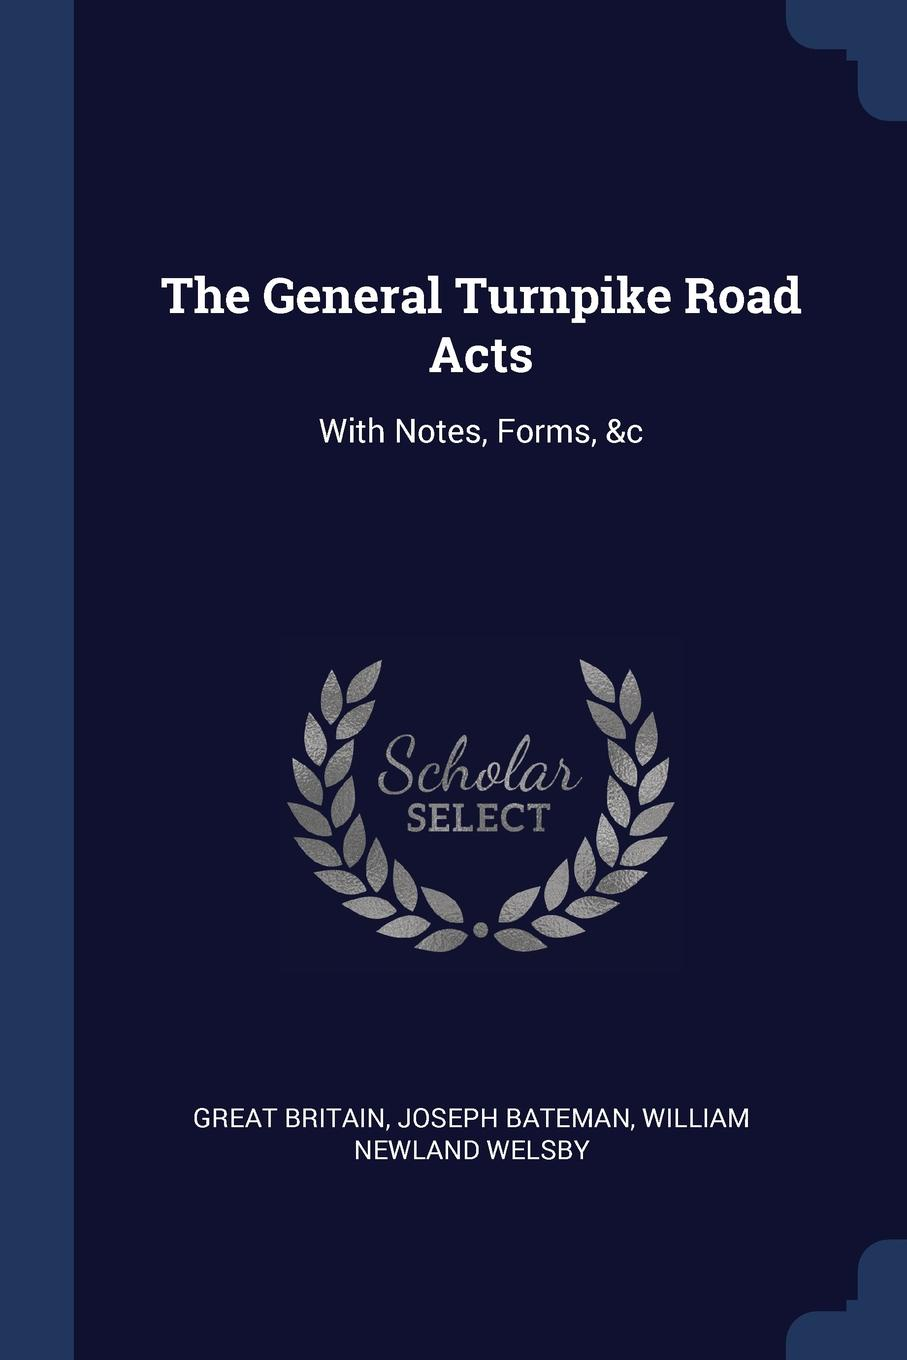 Great Britain, Joseph Bateman, William Newland Welsby The General Turnpike Road Acts. With Notes, Forms, .c